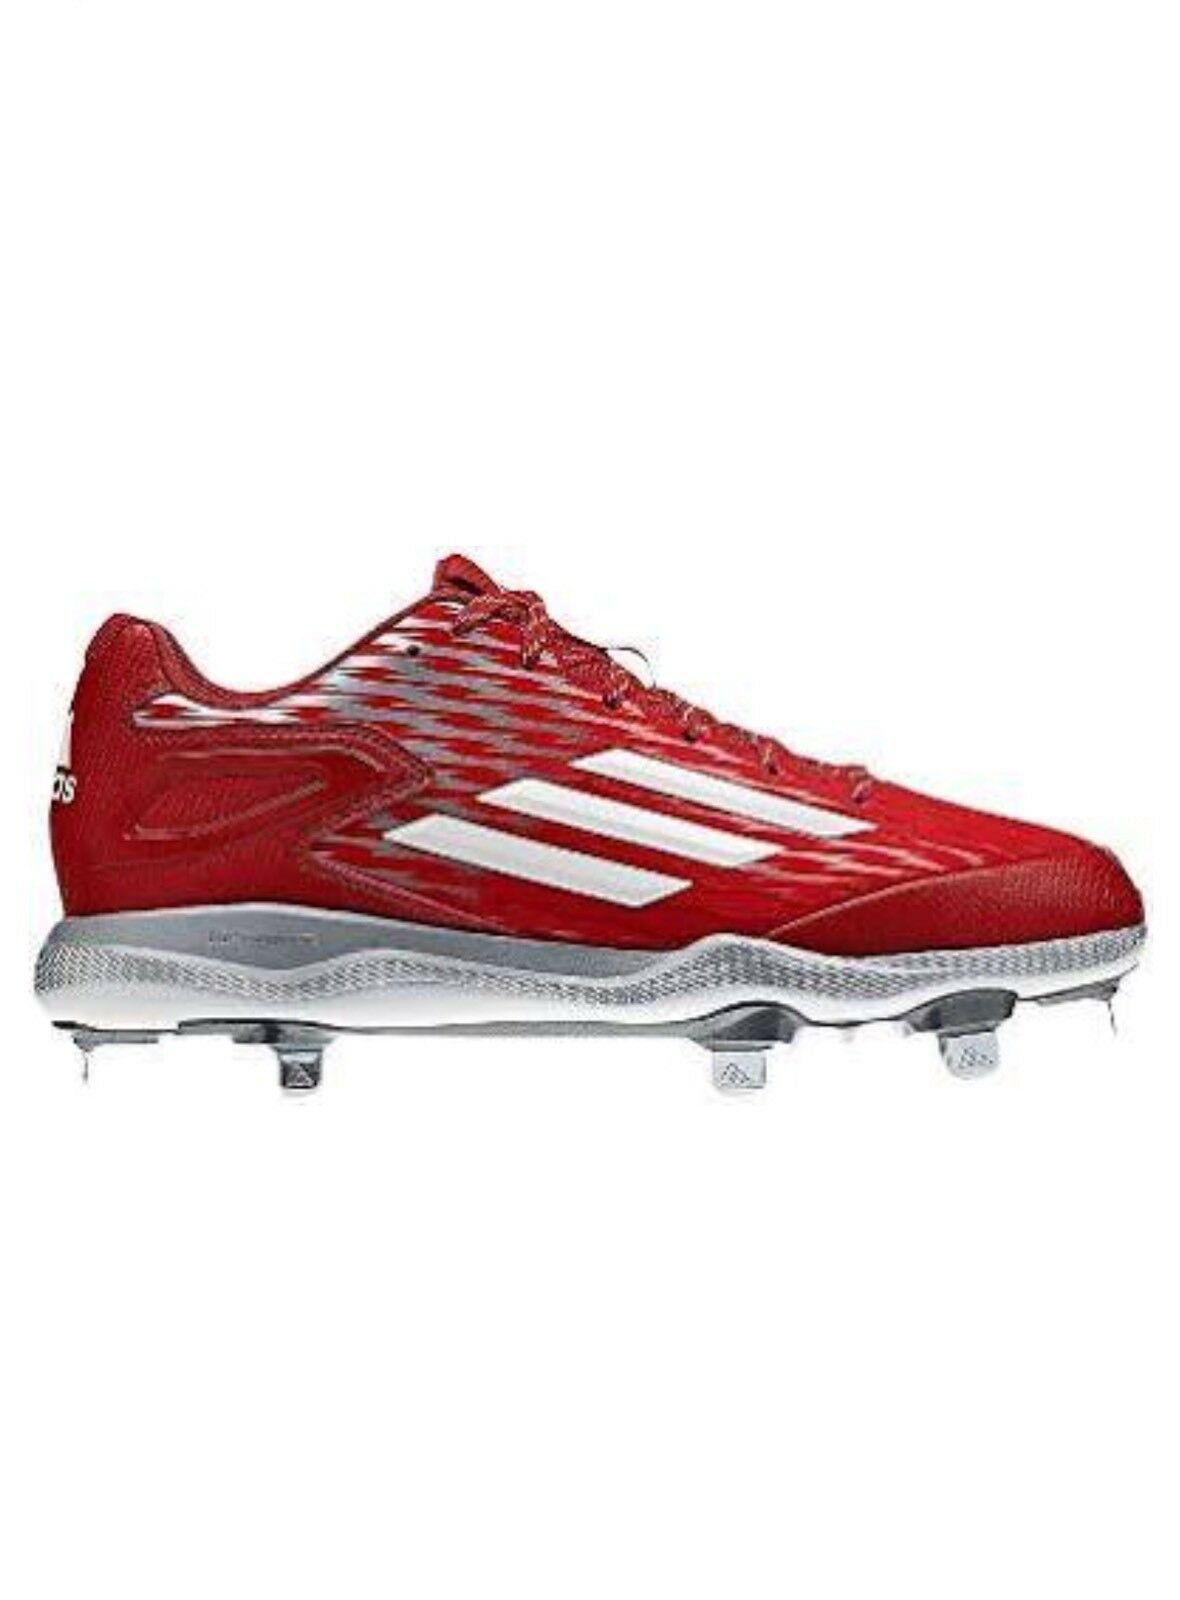 ADIDAS MEN'S POWERALLEY BASEBALL CLEATS METAL LITESTRIKE IRON SKIN ORTHOLITE ⚾️